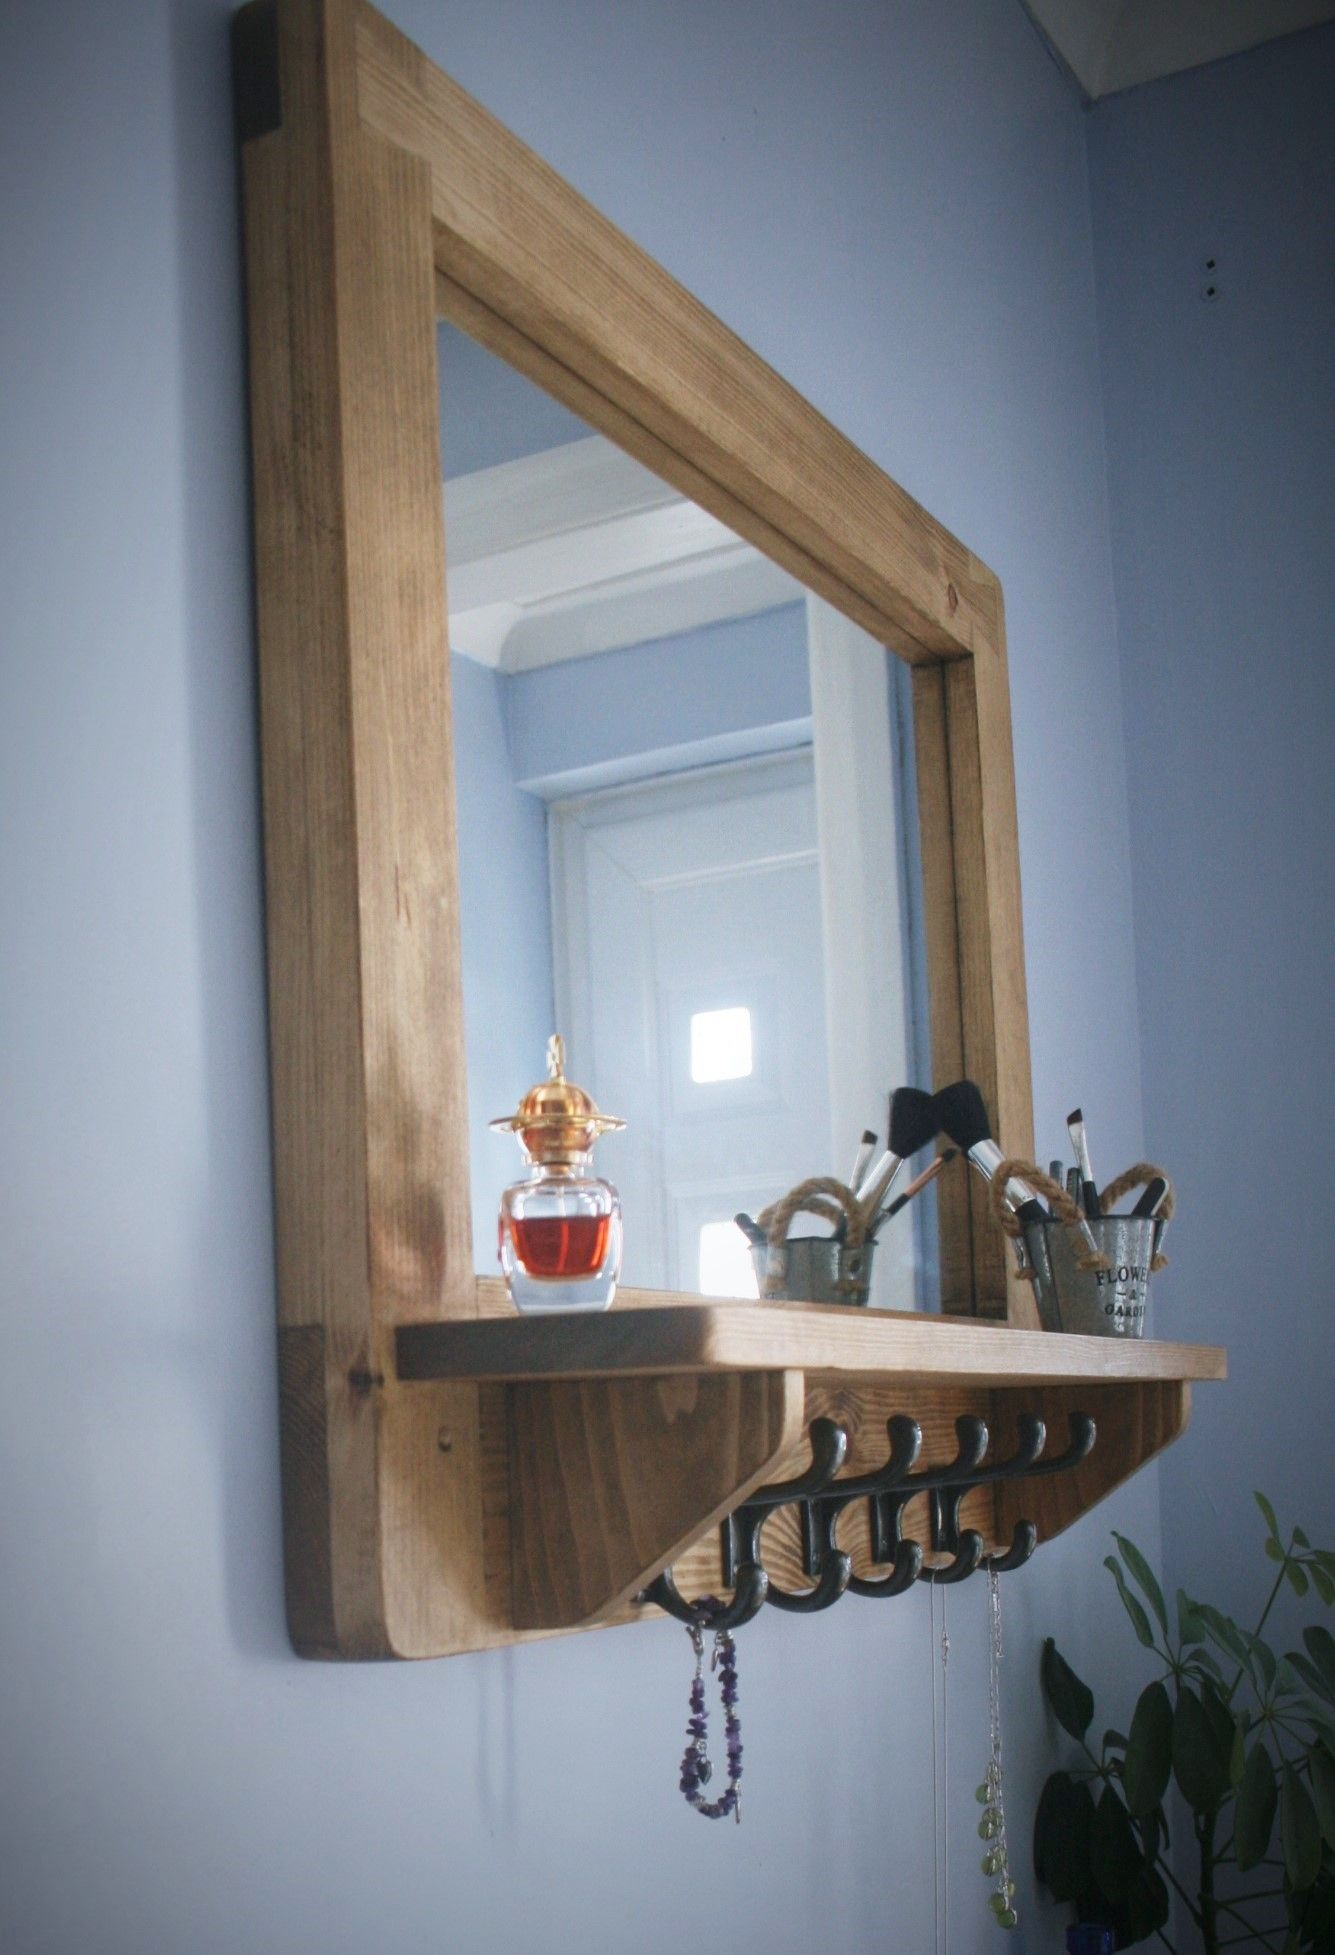 Our Custom Handmade Modern Rustic Mirror Has A Thick Reclaimed Wood Fsc Timber Frame A Generous Inset S Wooden Mirror Wooden Mirror Frame Wood Framed Mirror